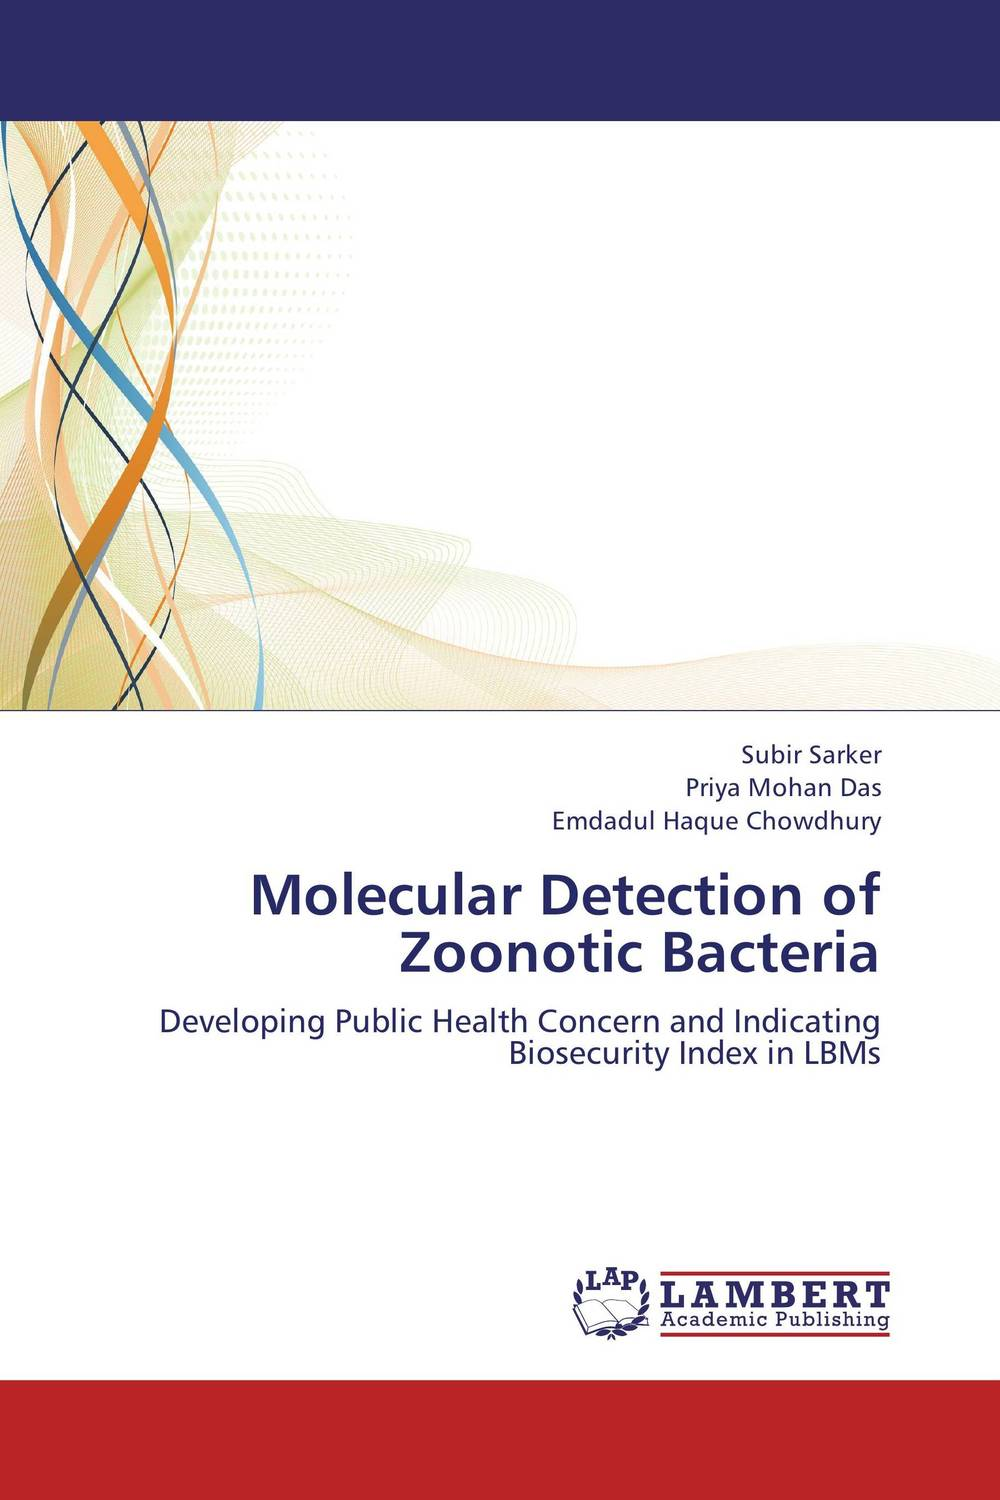 Molecular Detection of Zoonotic Bacteria